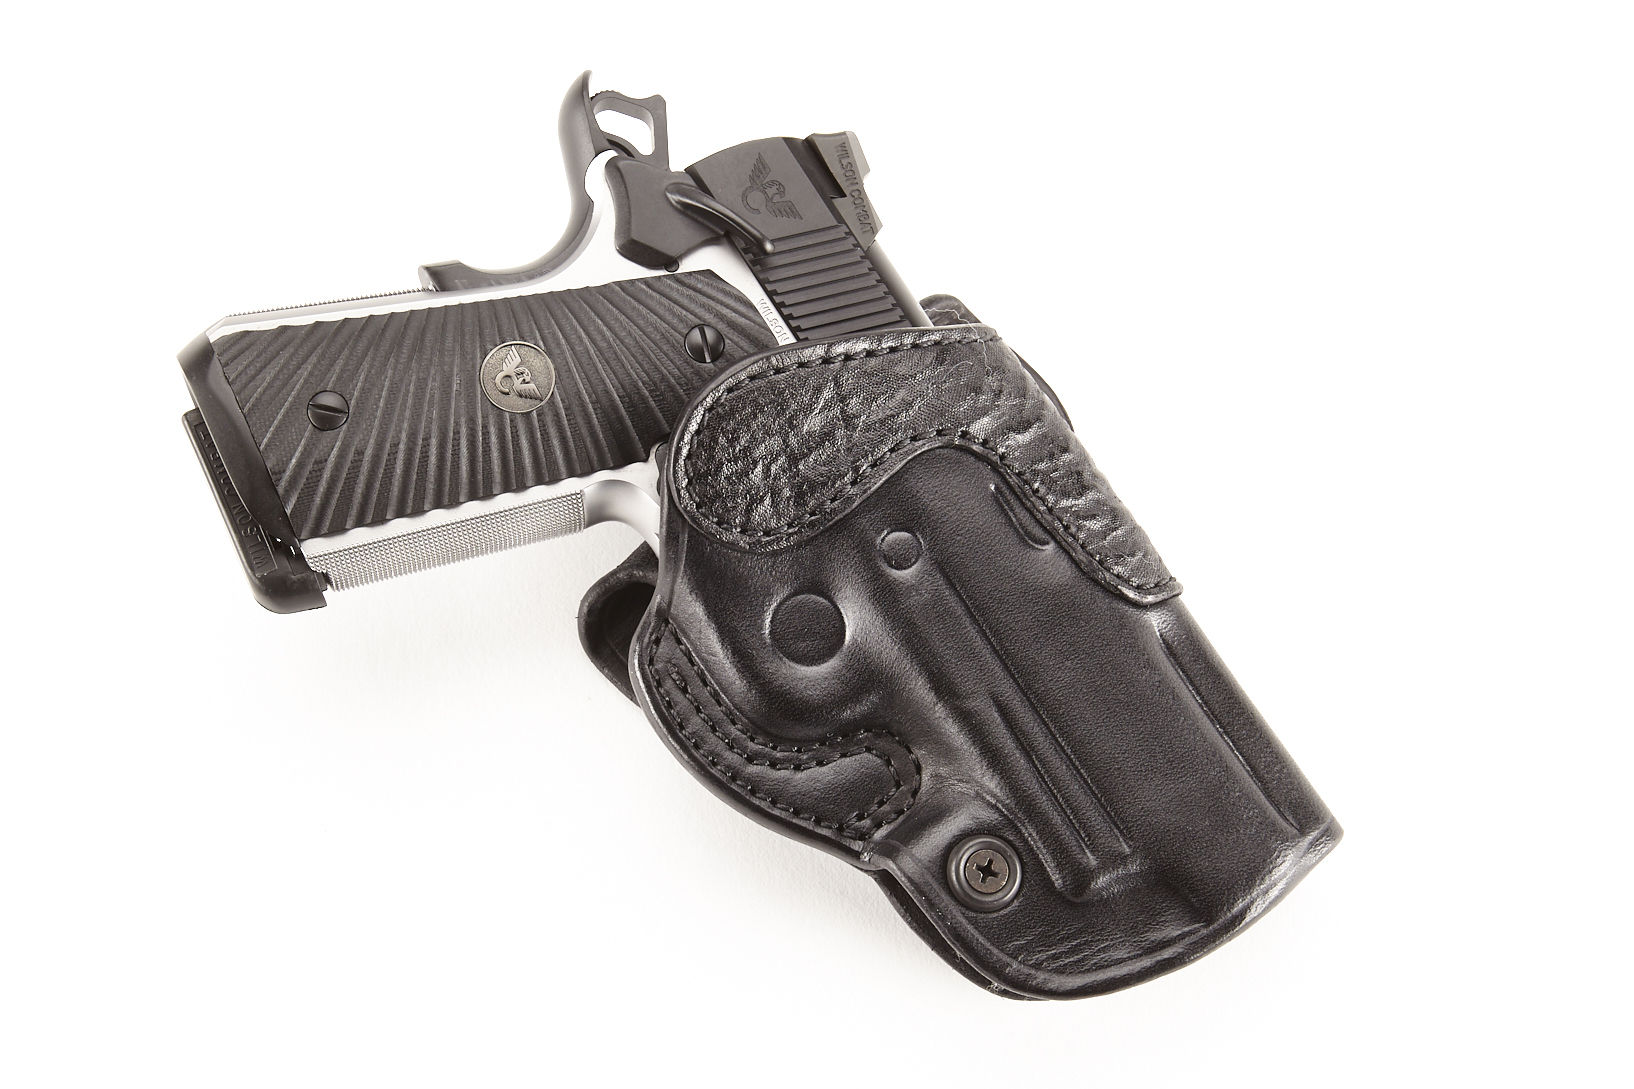 RangeTac Adjustable Holster | Compact 1911 | Right Hand